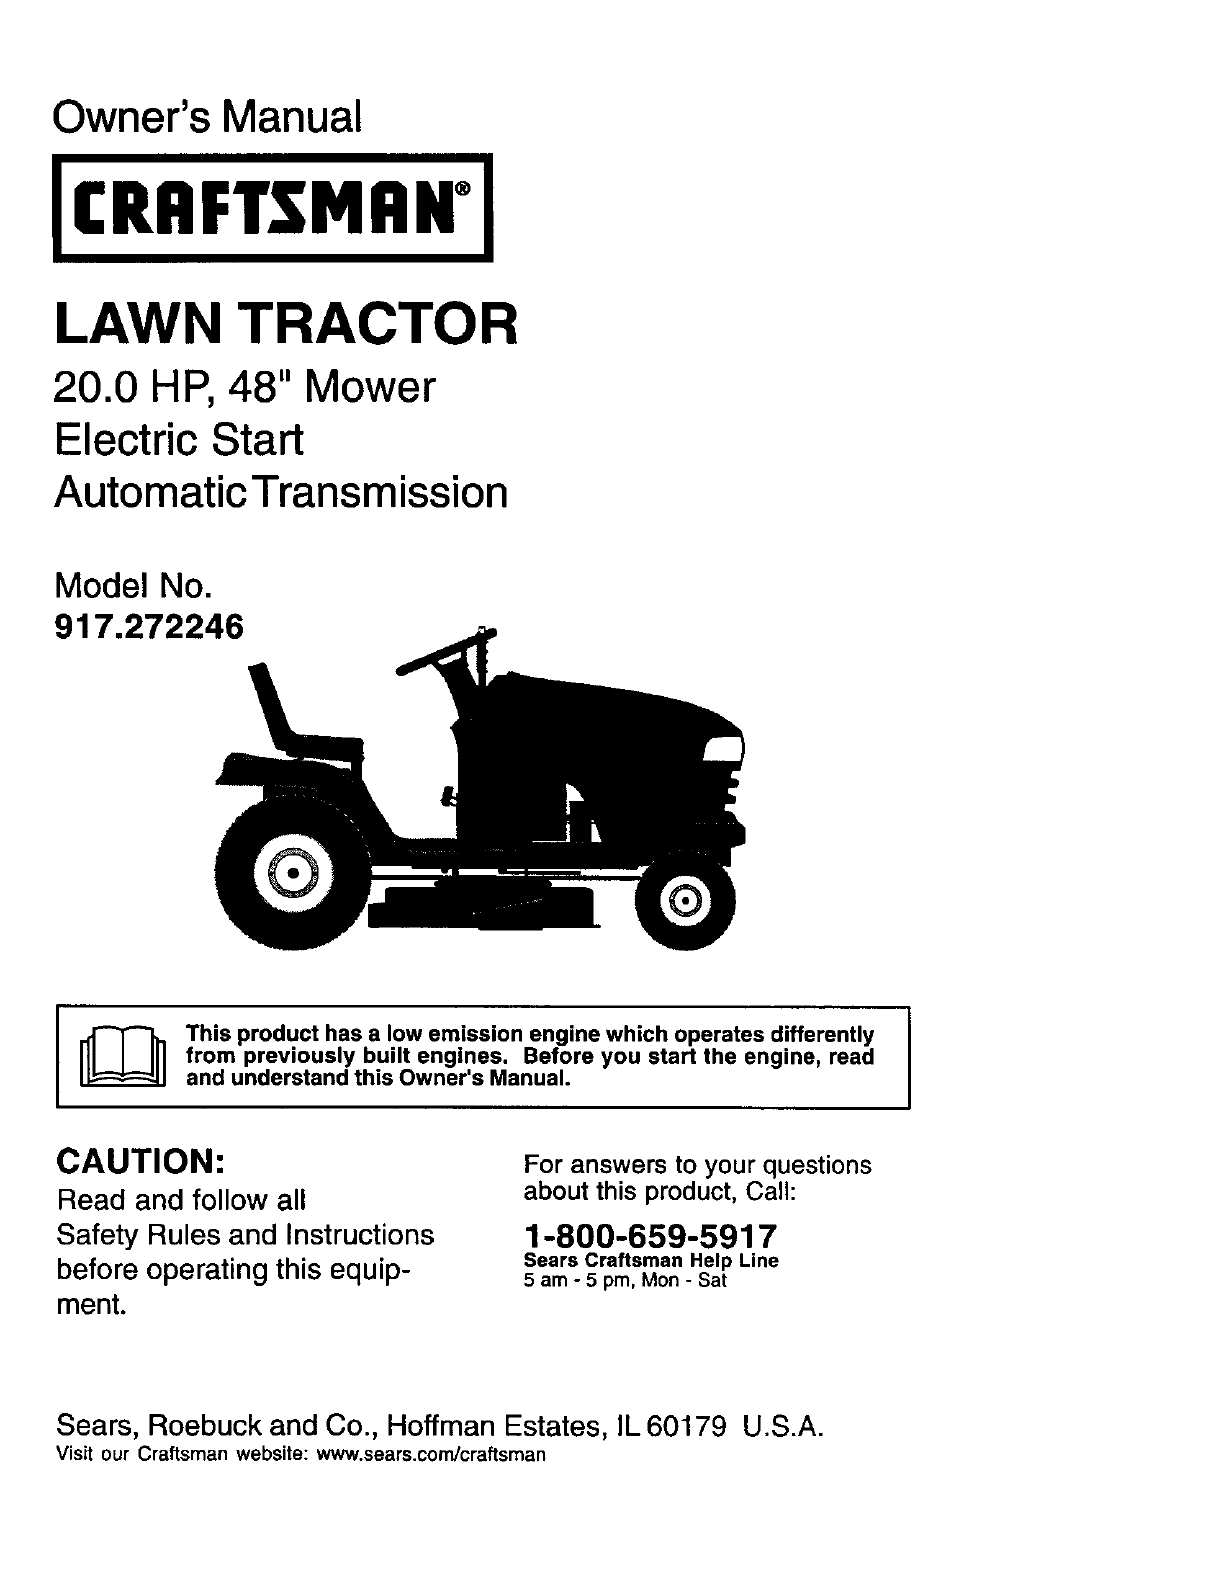 Craftsman 917272246 User Manual Lawn Tractor Manuals And Guides L0202146 Transmission Drive Belt Mower Electric Clutch Owners